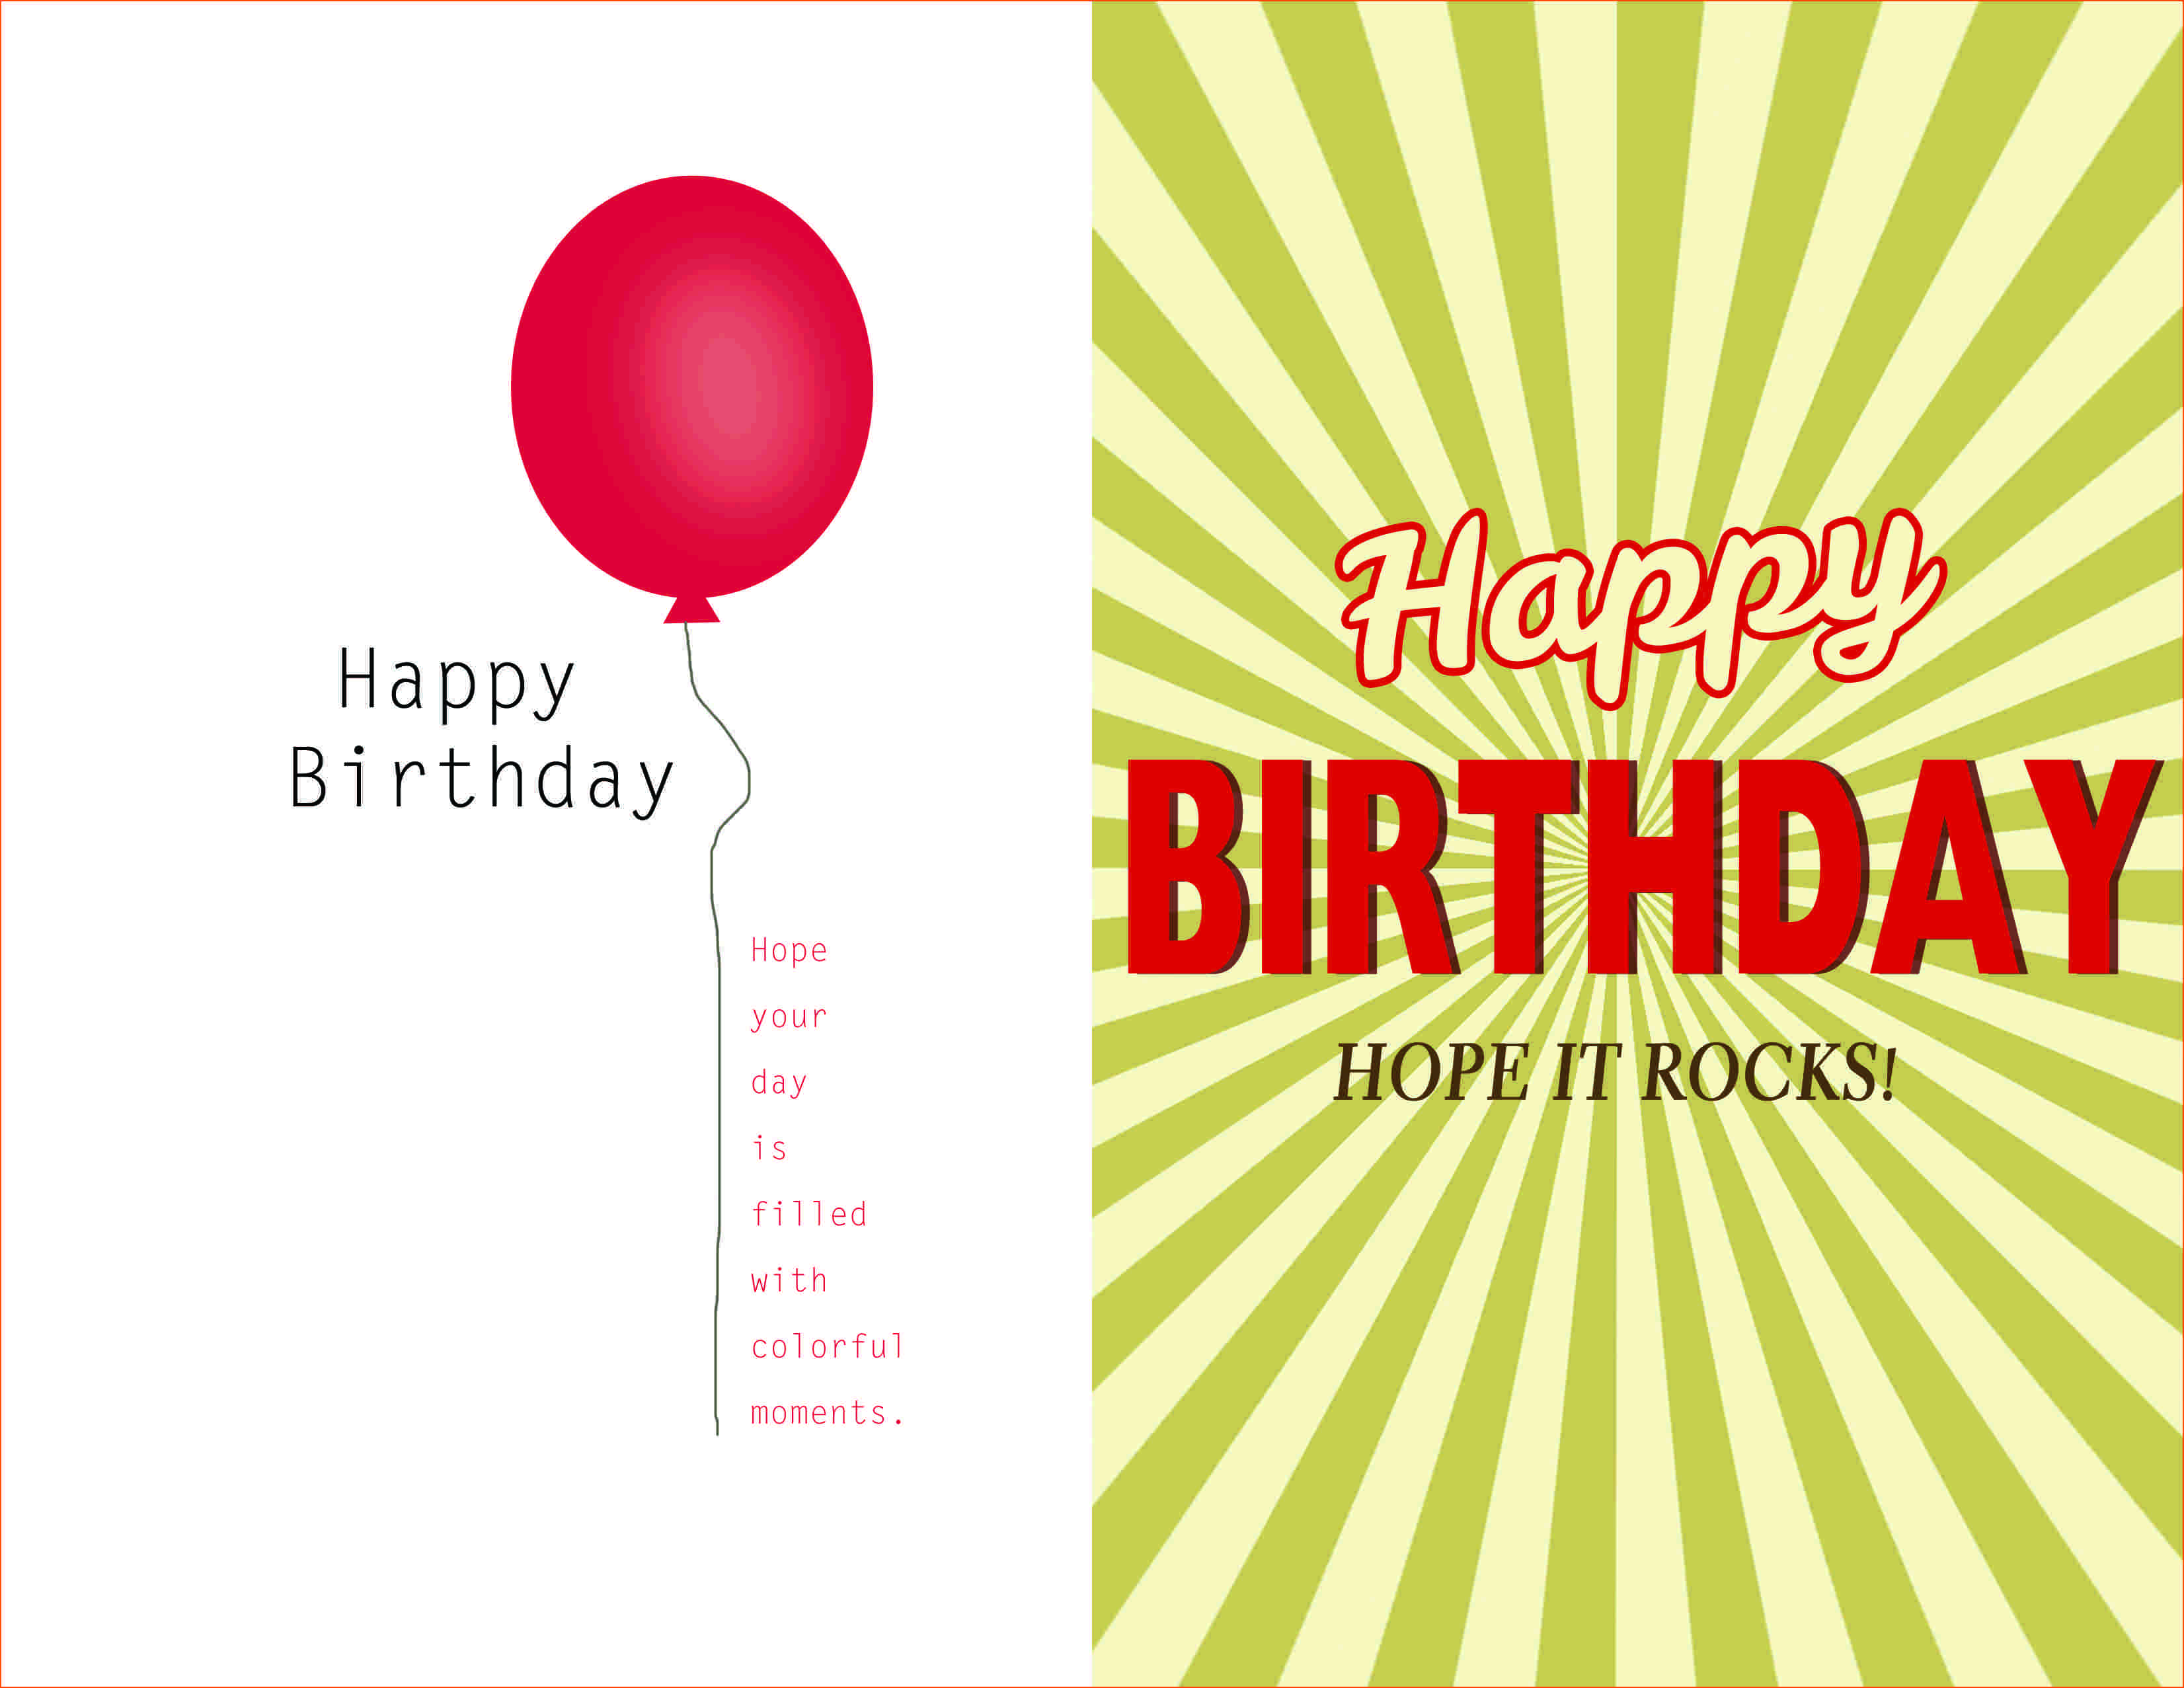 cool birthday card templates ; Birthday-Card-Templates-And-Get-Ideas-How-To-Make-Fantastic-Birthday-Card-Appearance-1